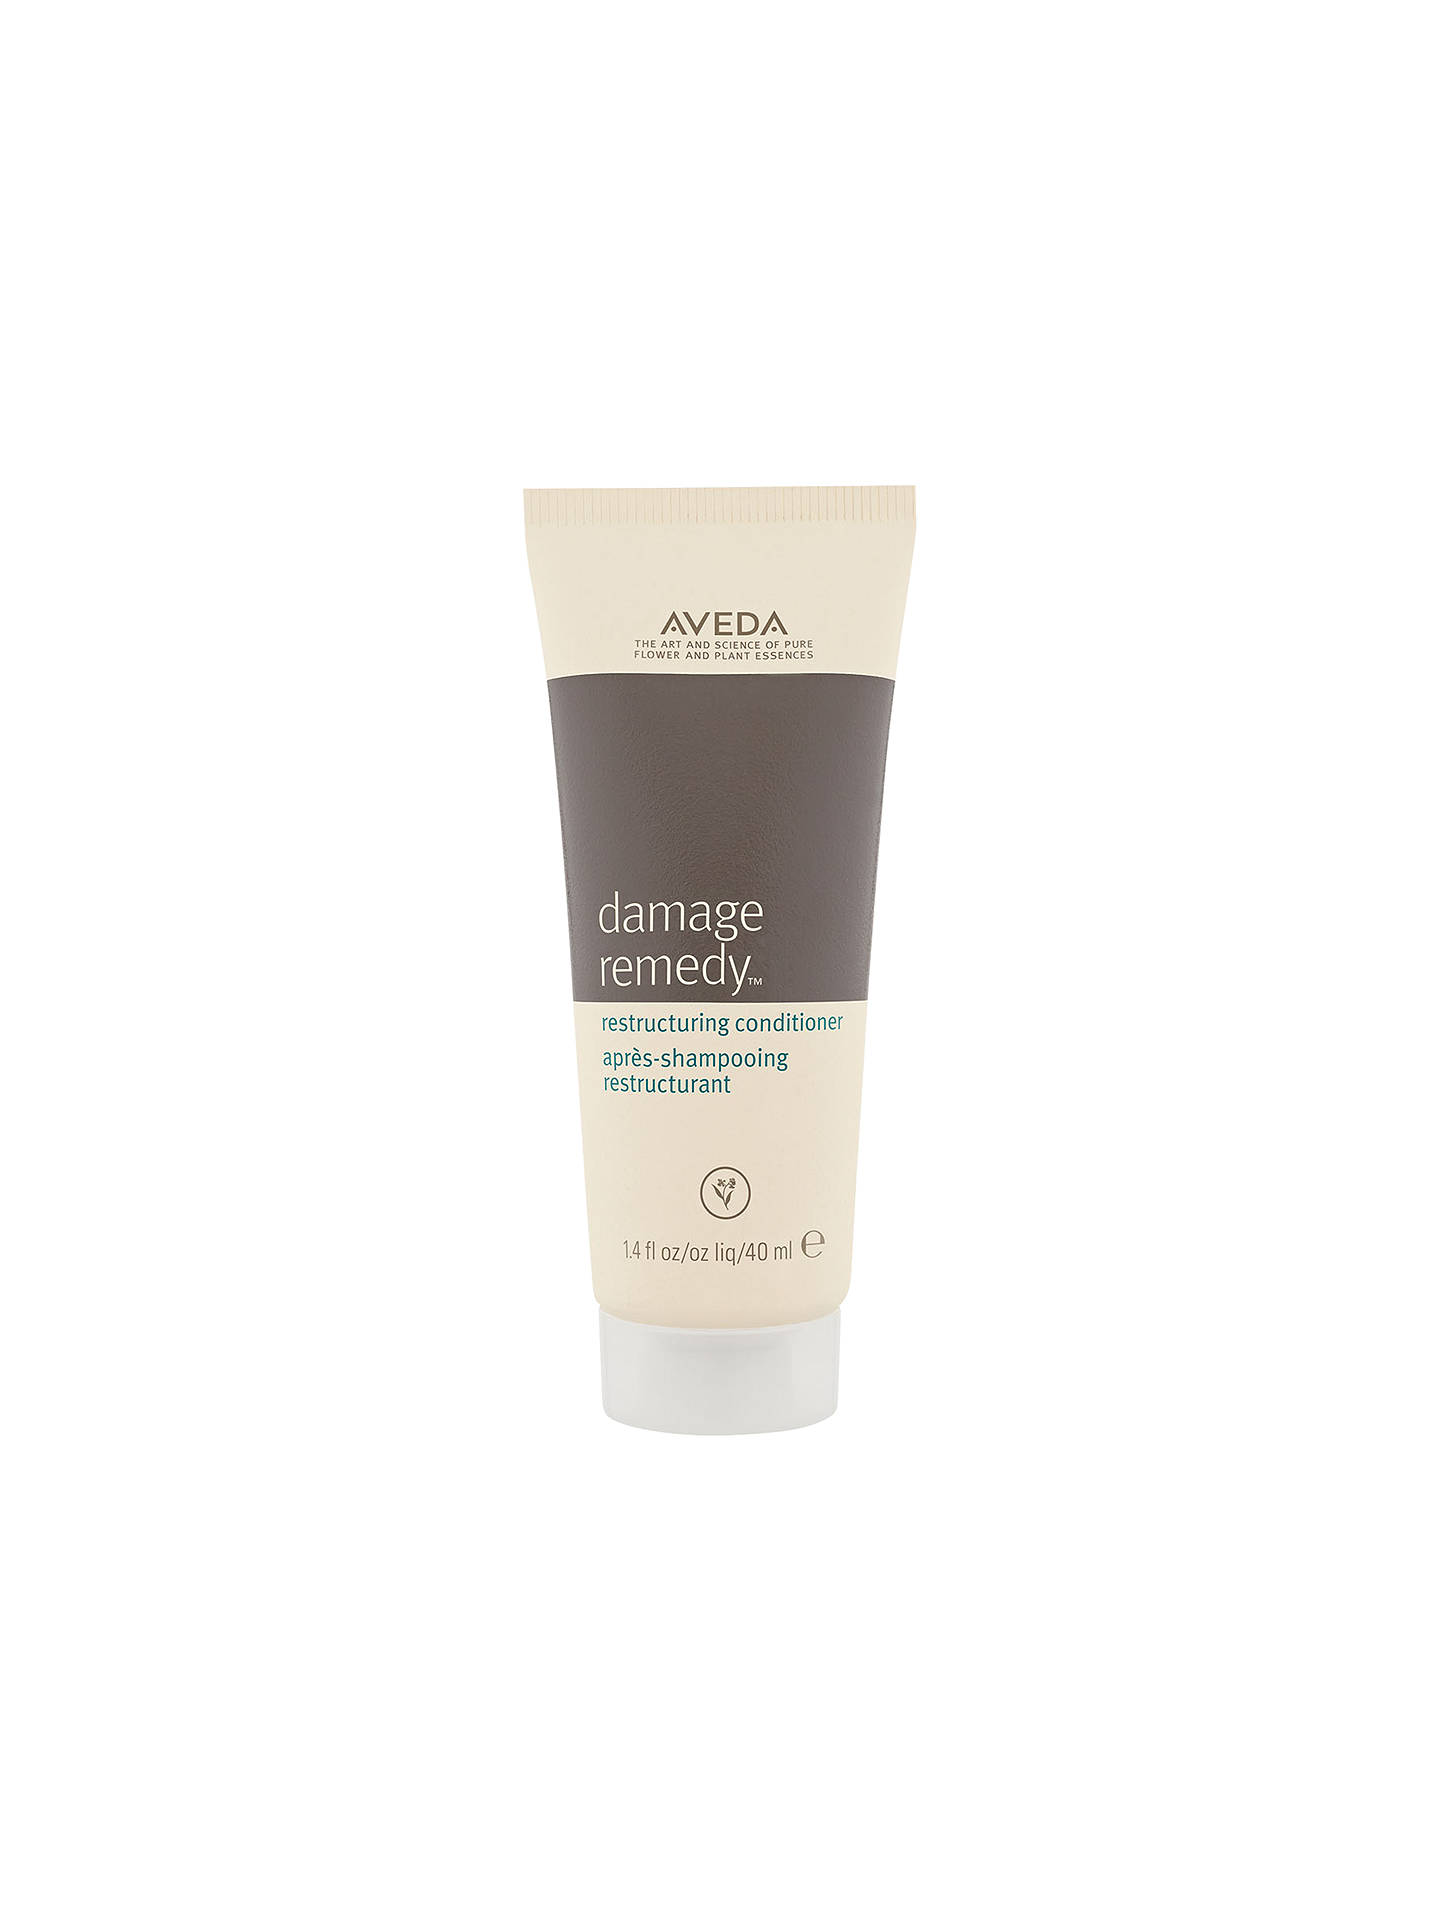 BuyAVEDA Damage Remedy™ Restructuring Conditioner, 40ml Online at johnlewis.com